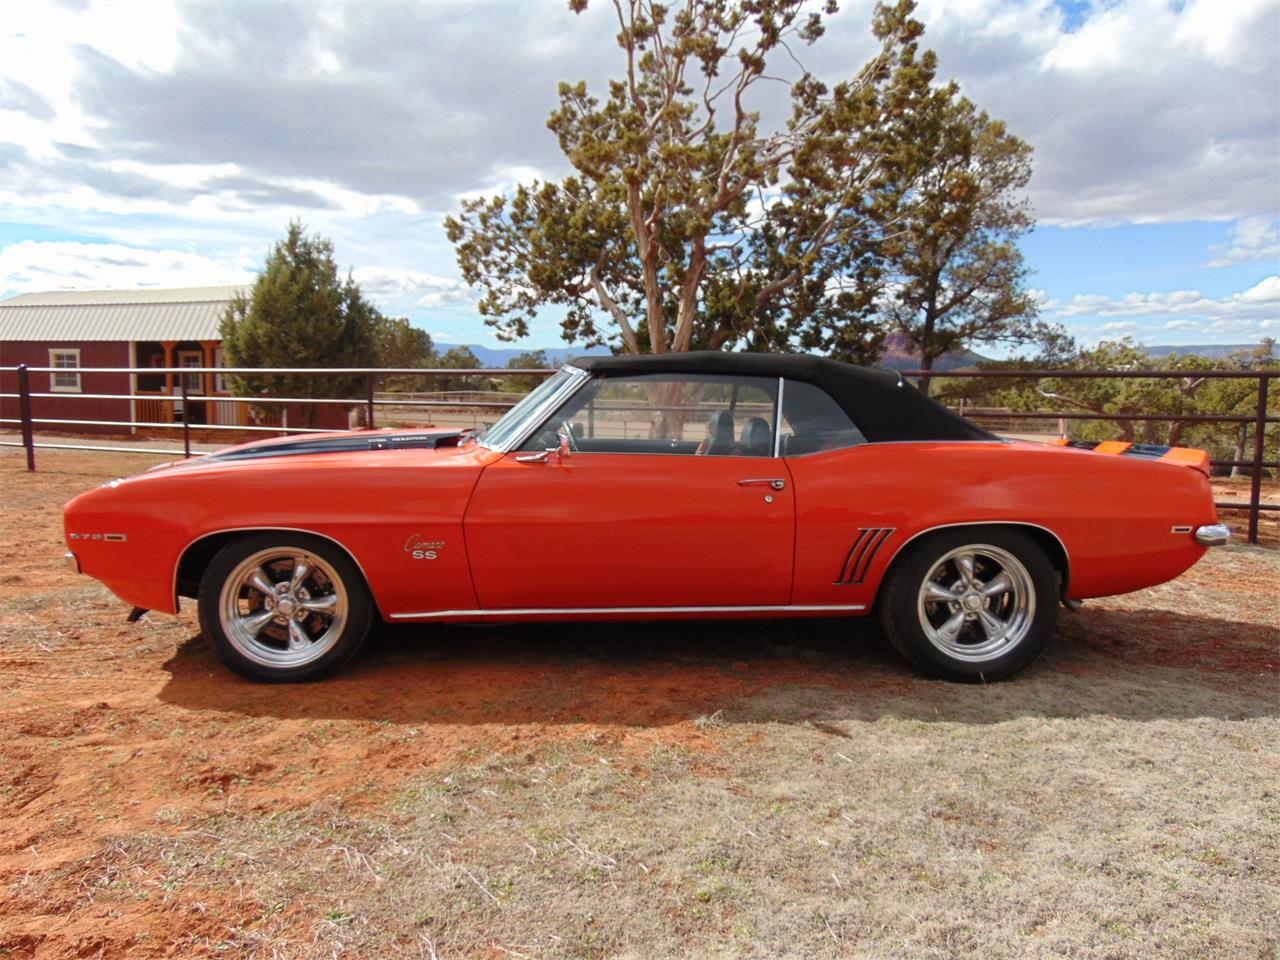 1969 Chevrolet Camaro RS/SS (CC-1331836) for sale in Carmel, California